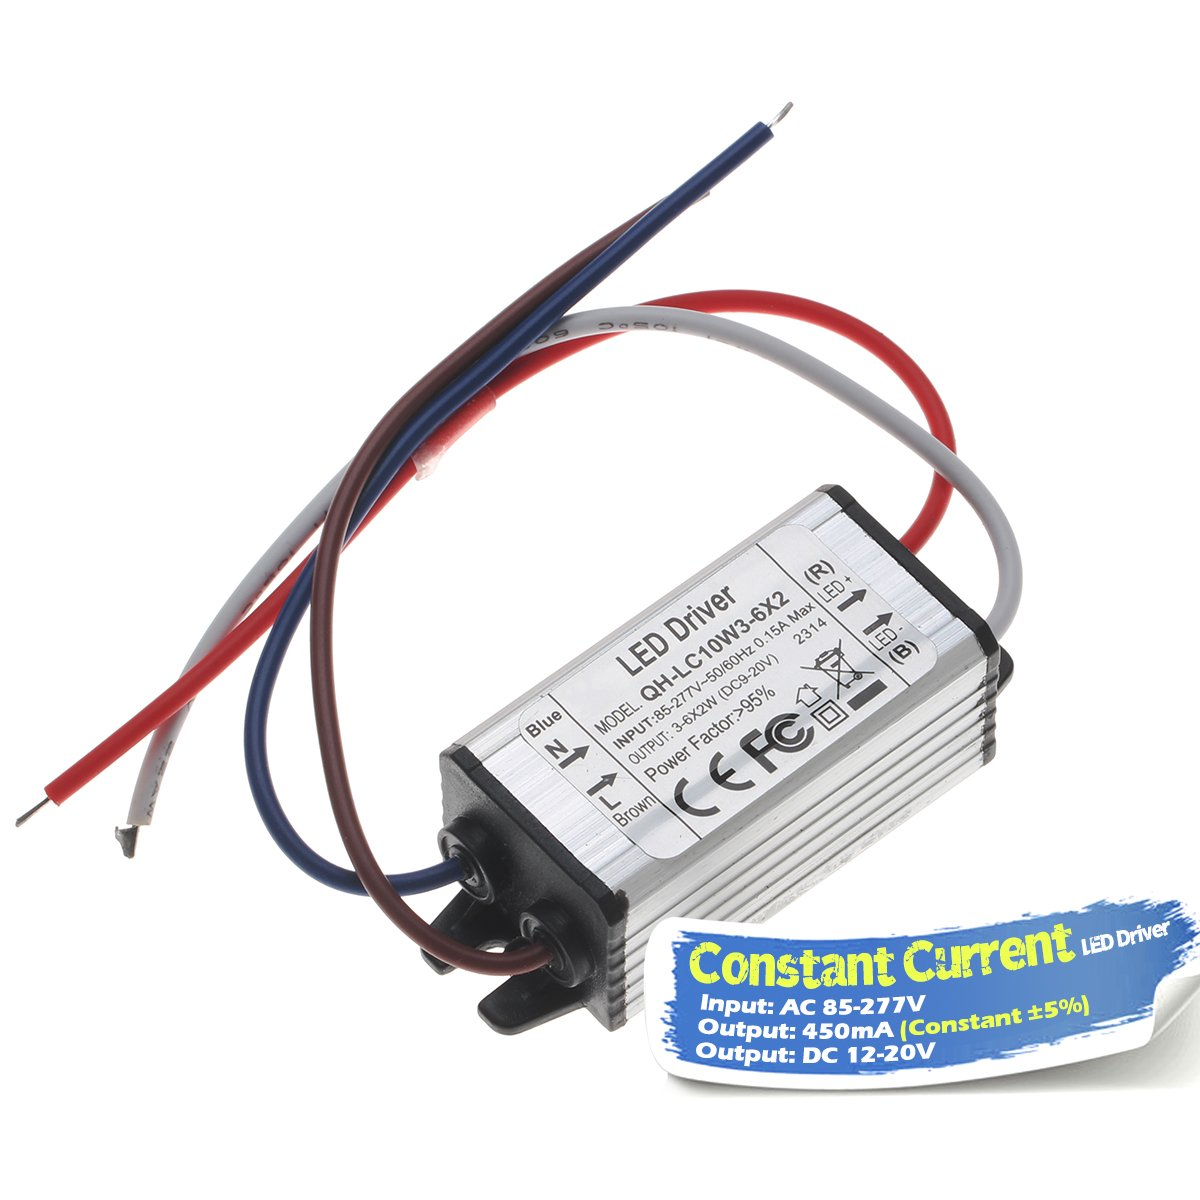 Chanzon Led Driver 450ma Constant Current Output 12v 20v Input 85 Drives Two 3 Watt Ledselectronics Project Circuts 277v Ac Dc 4 6x2w Ip67 Waterproof Power Supply 450 Ma Lighting Transformer Drivers